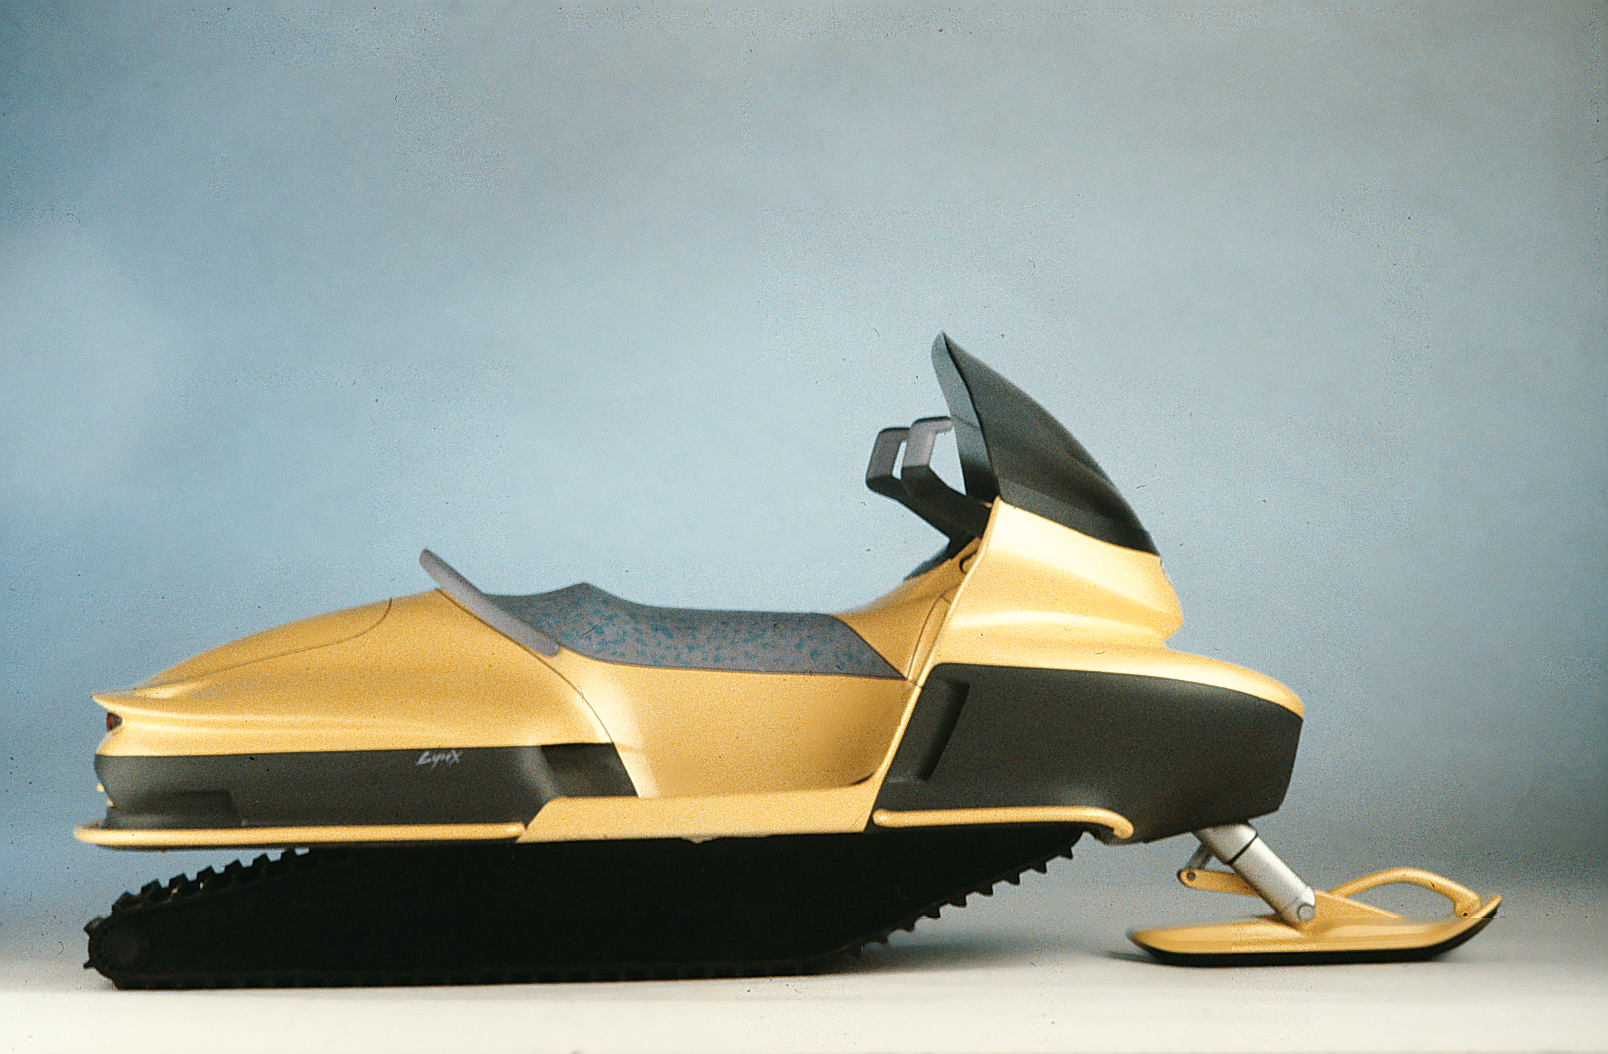 Snowliner concept 1988